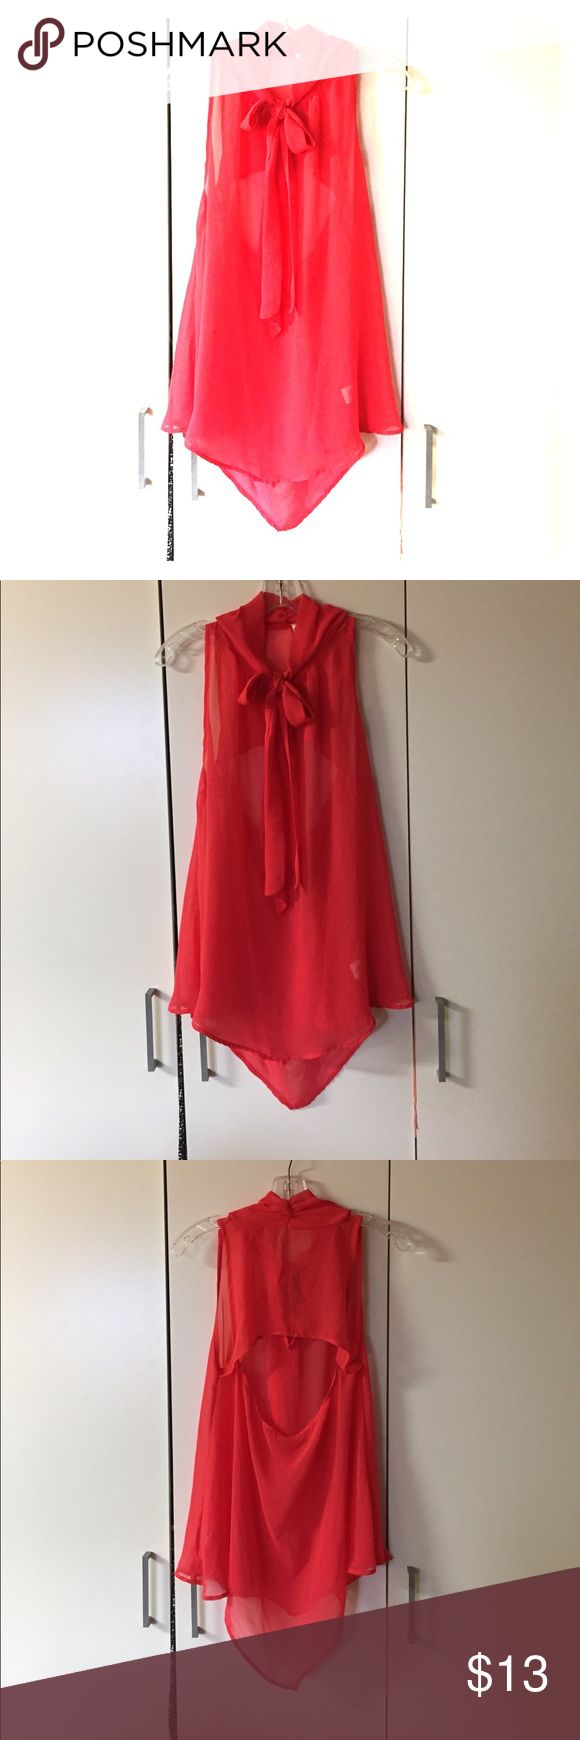 Long red/coral blouse Really nice long red/coral blouse. Has and open back. Can be dressed up or dressed down. It looks really cute with tights and long boots for fall, or shorts and tube top for summer. Tank-top not included. Tops Blouses